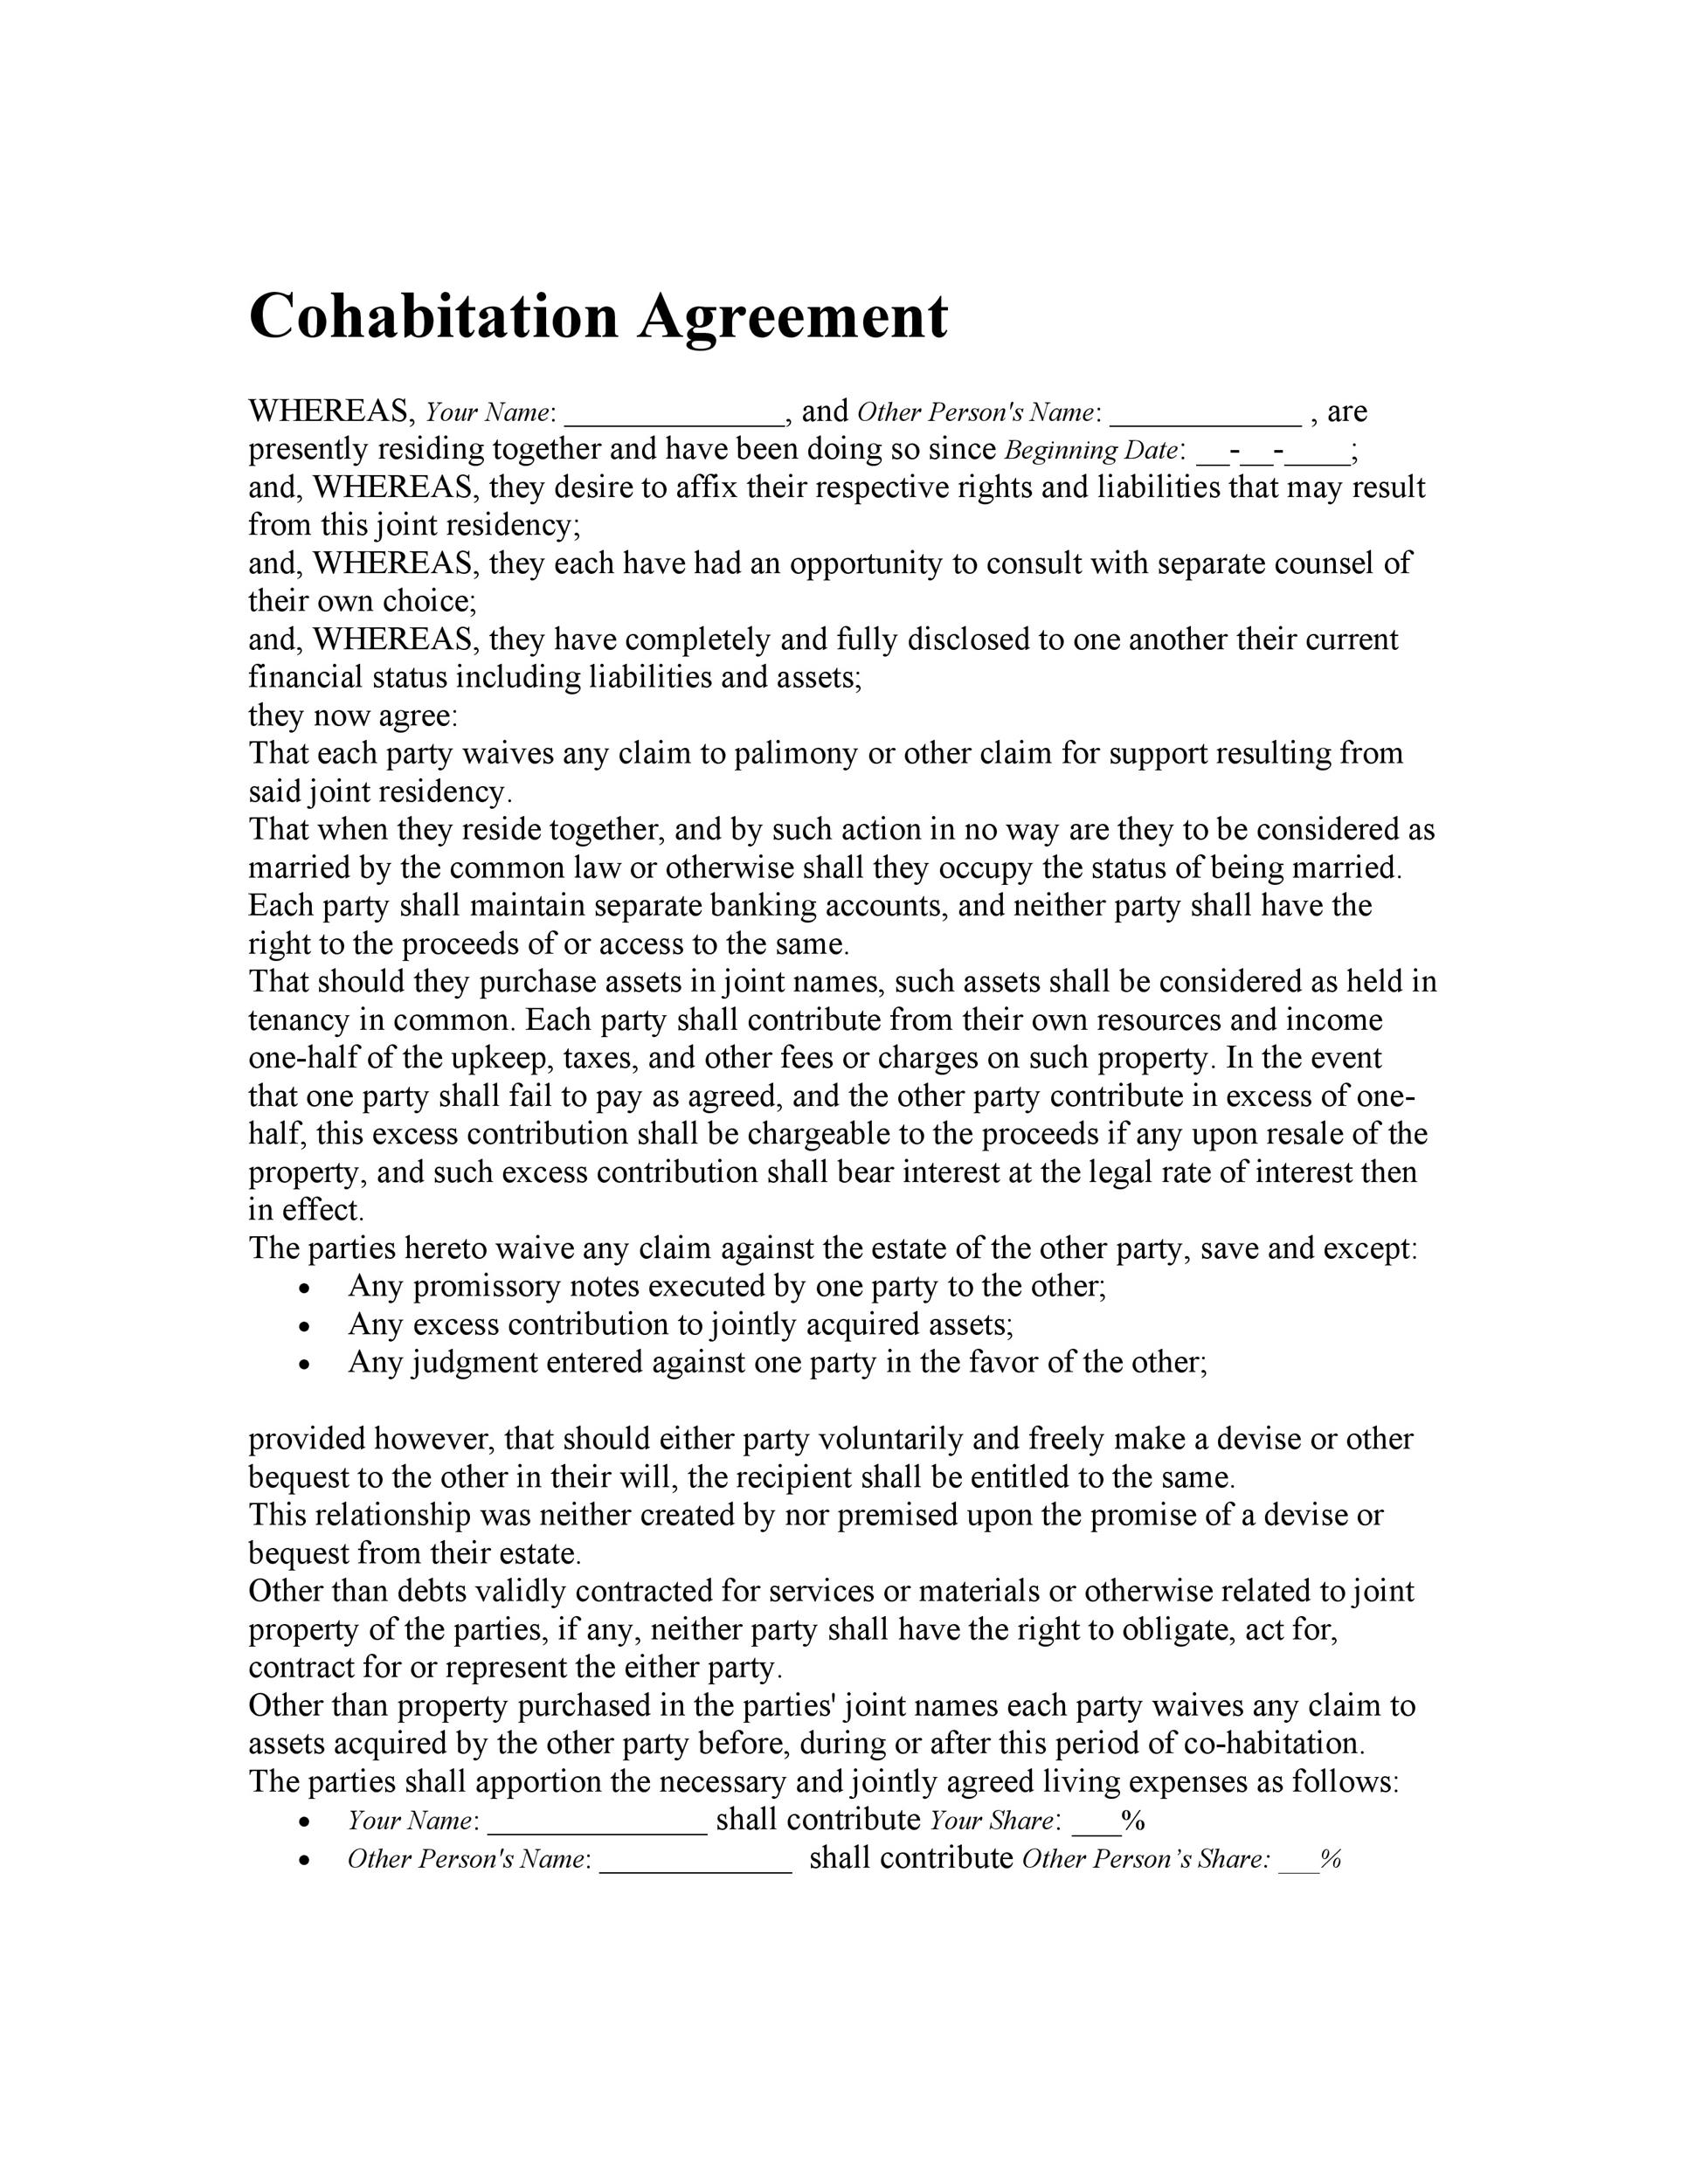 Cohabitation Agreement - 30+ Free Templates  Forms - Template Lab - cohabitation agreement template